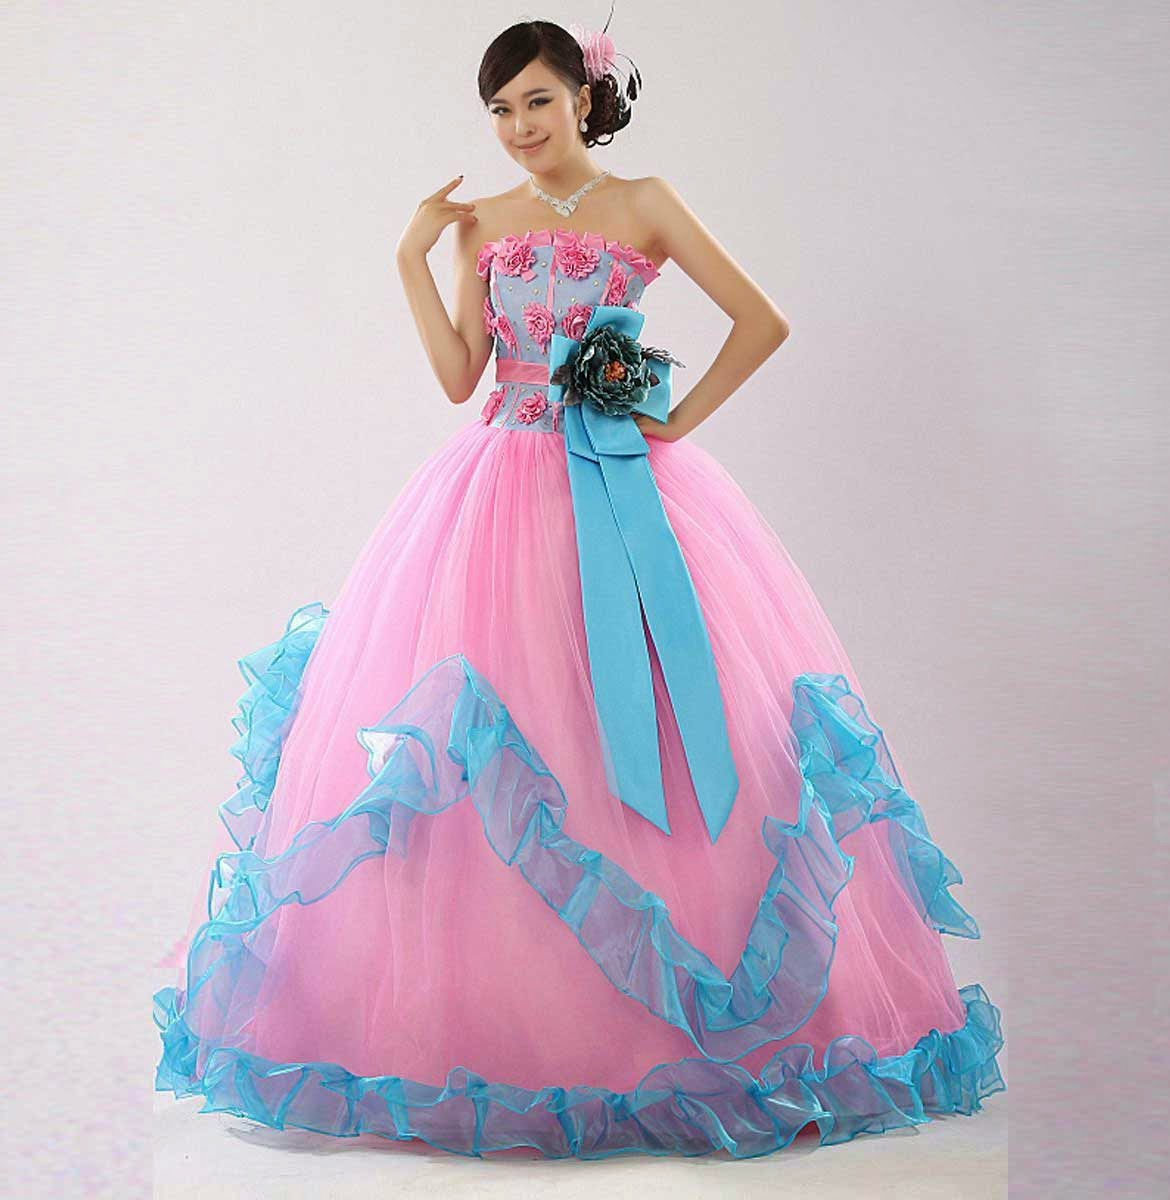 Colored Wedding Dresses Pinterest Photos HD Concepts Ideas